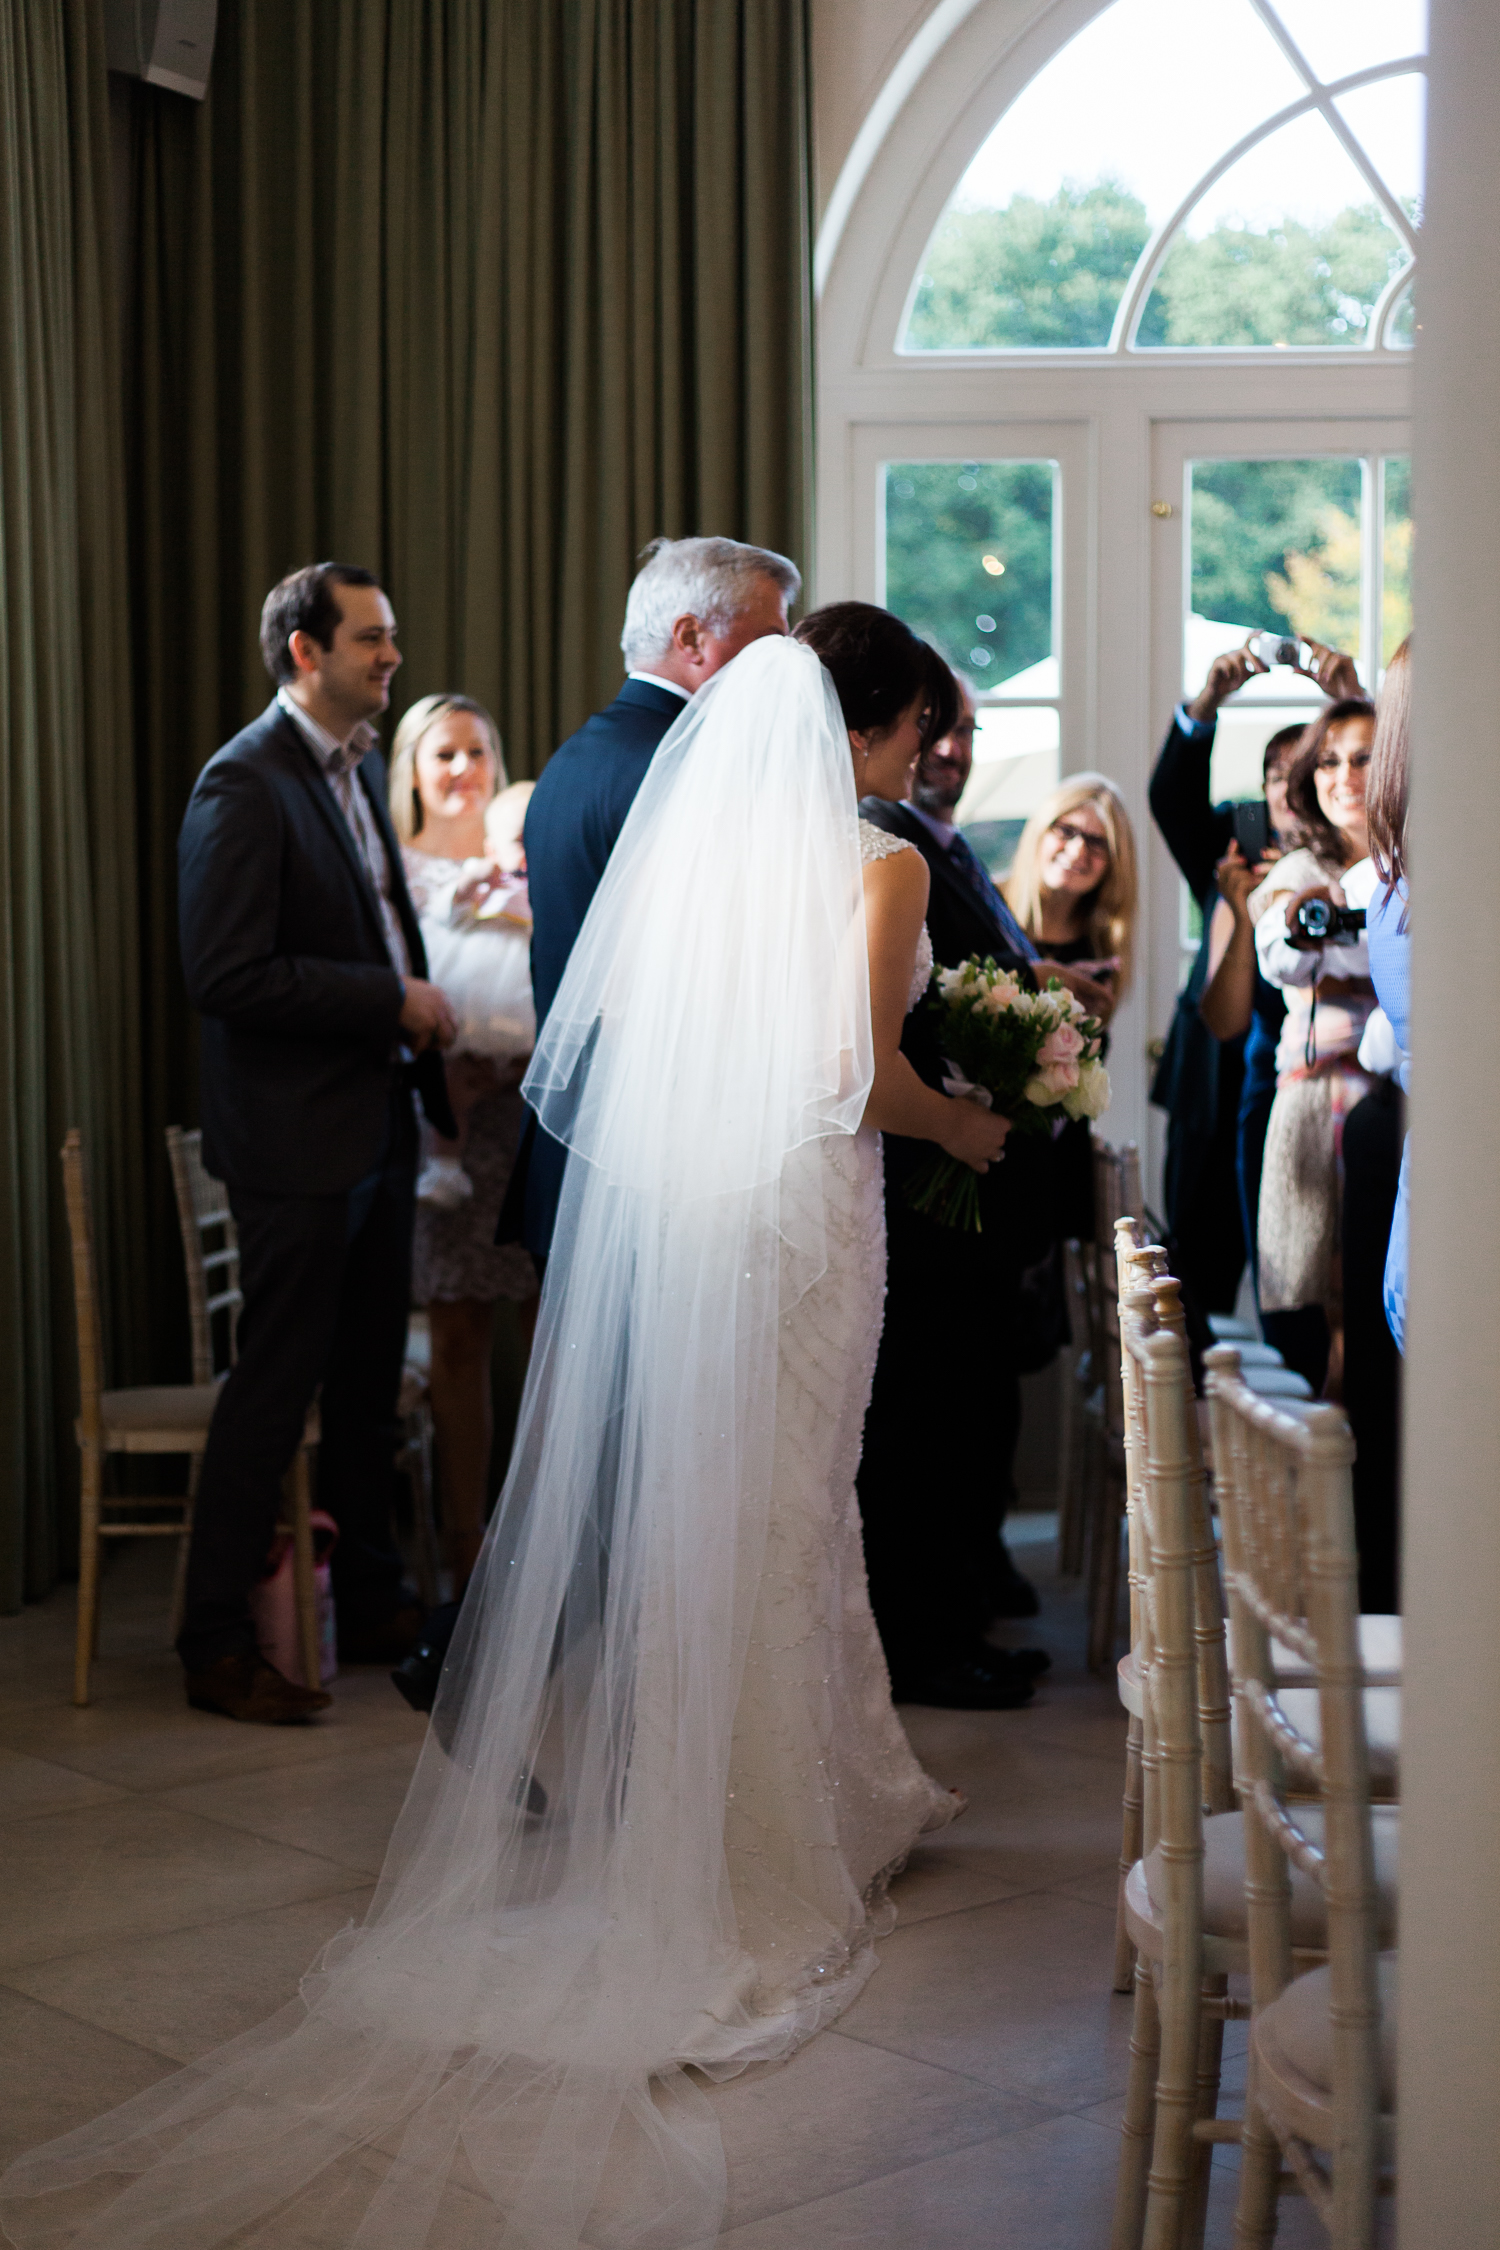 Arrival of the bride at Iscoyd Park wedding ceremony photo